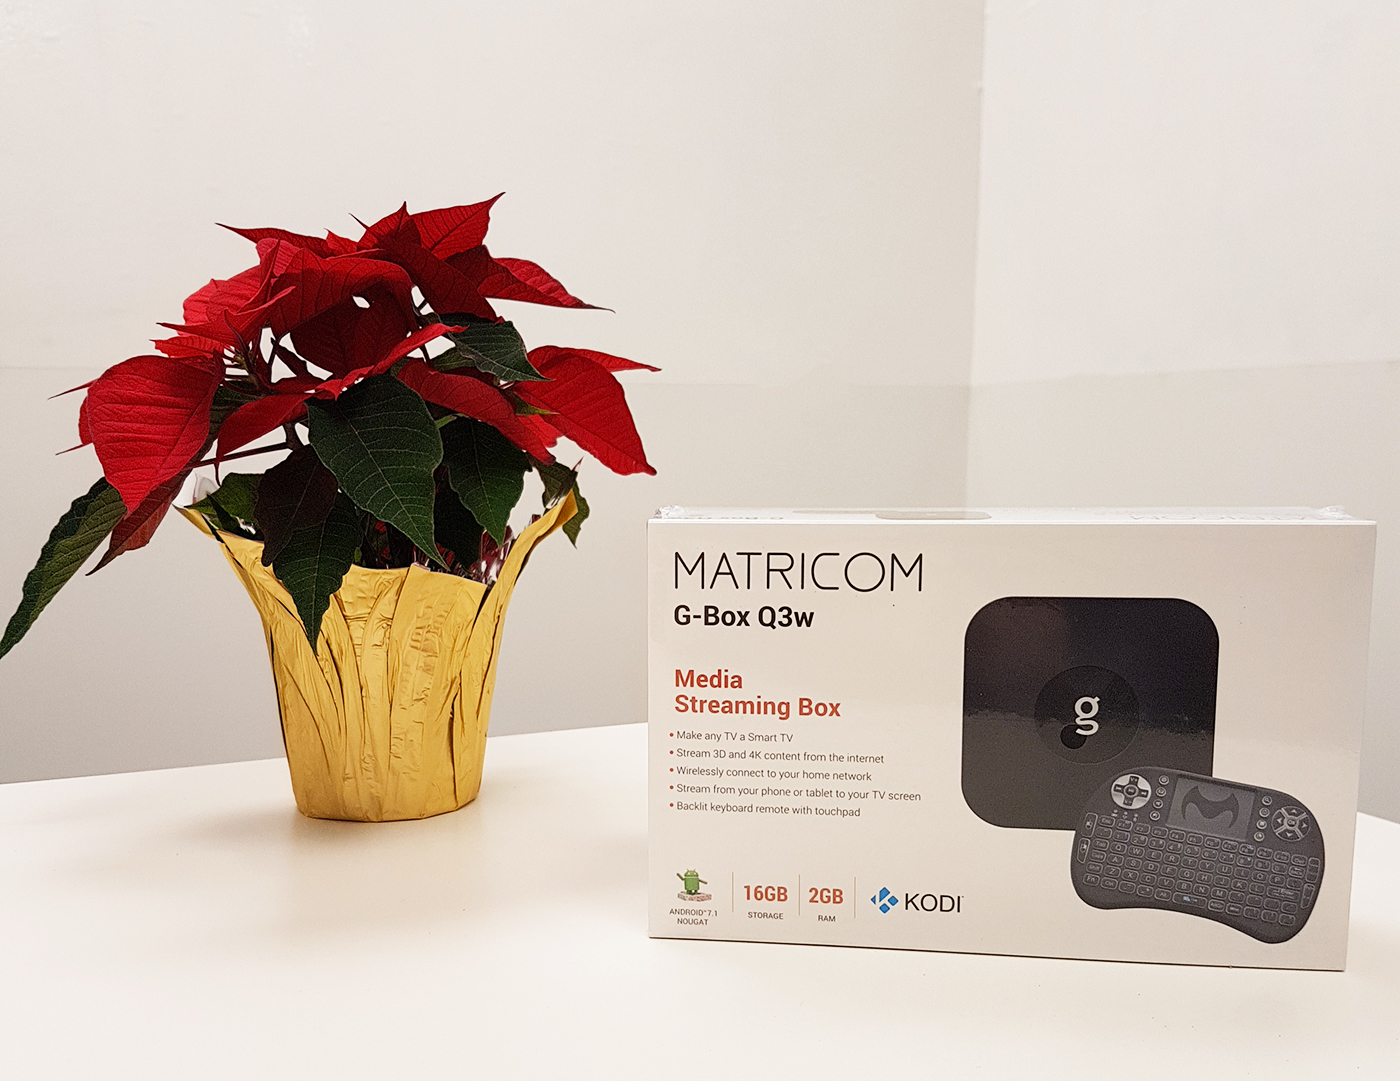 Enter this contest for a chance to win a Matricom Android G